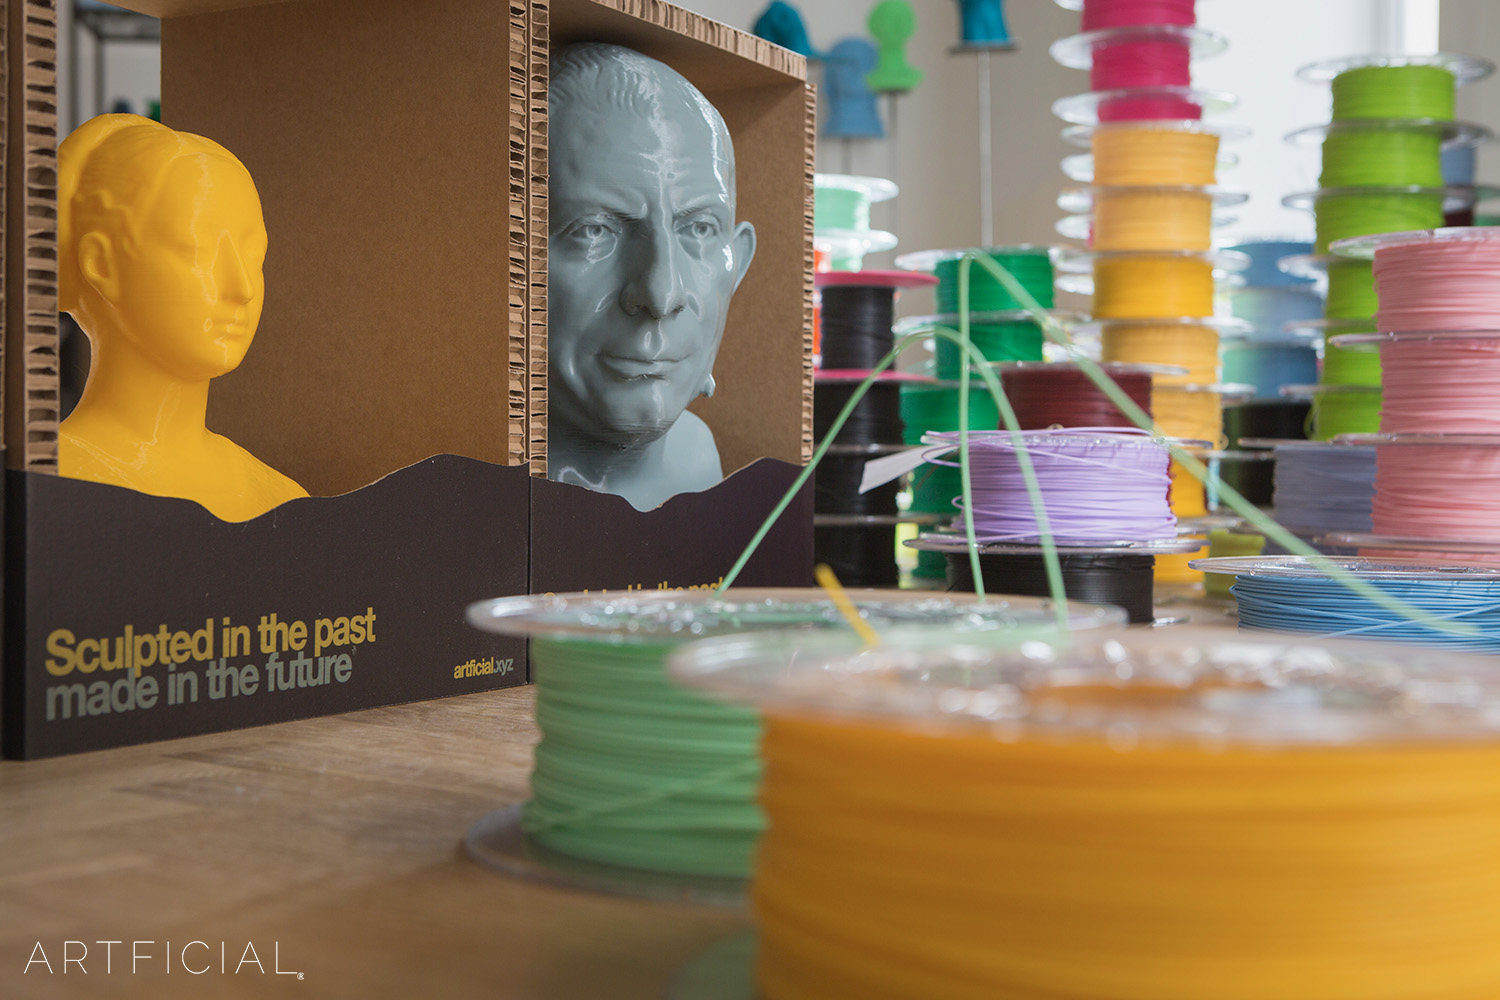 Artficial Packaging and Filament inside the Factory of the Future